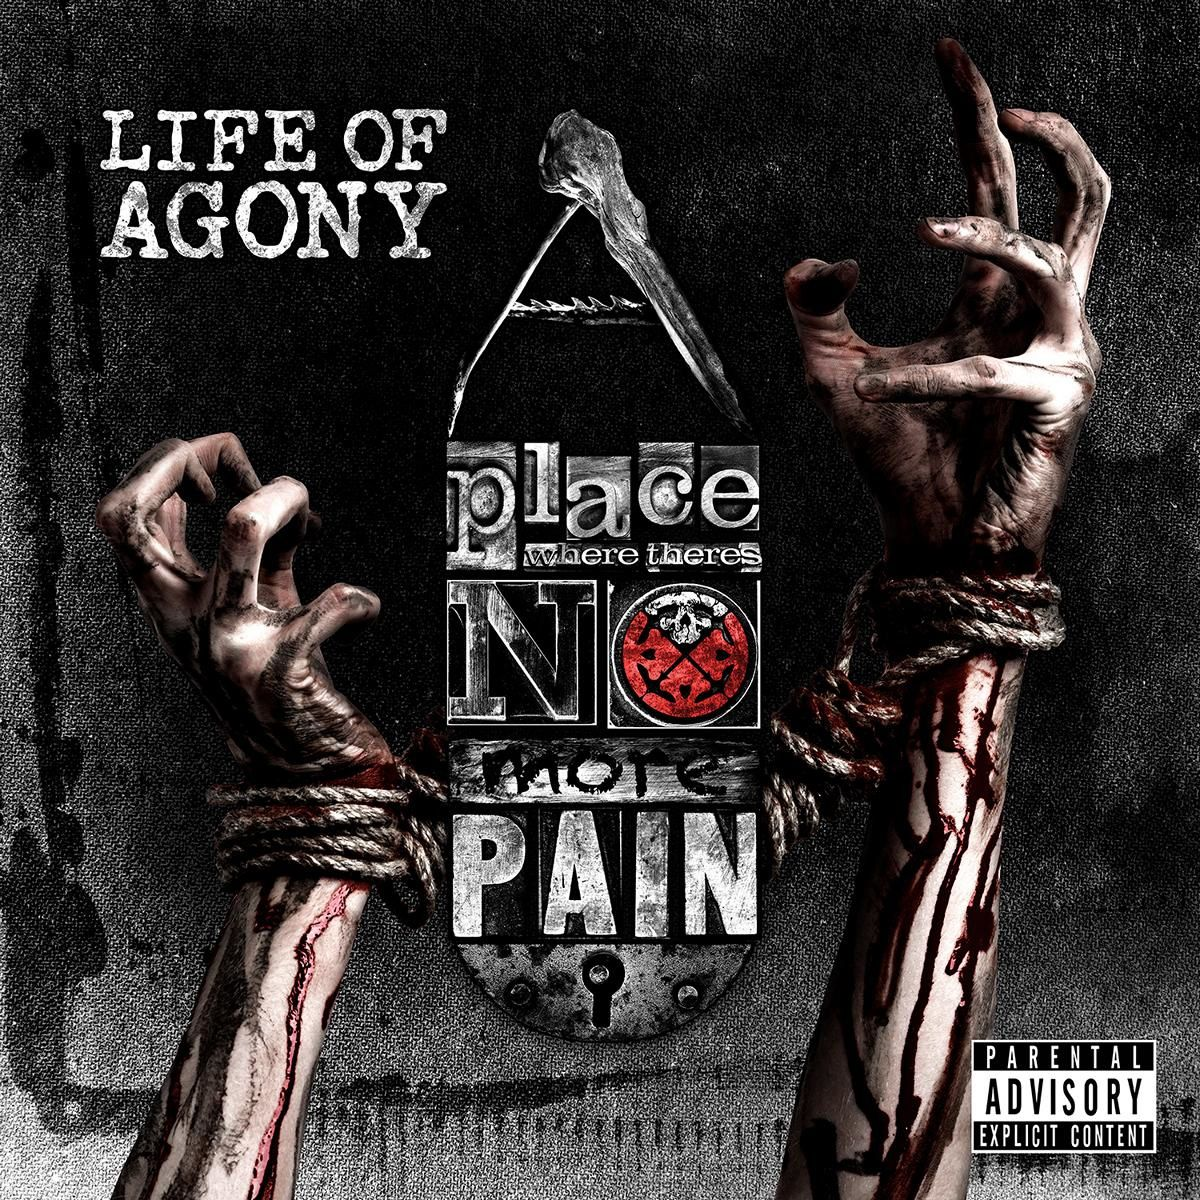 First teaser from the upcoming LIFE OF AGONY album